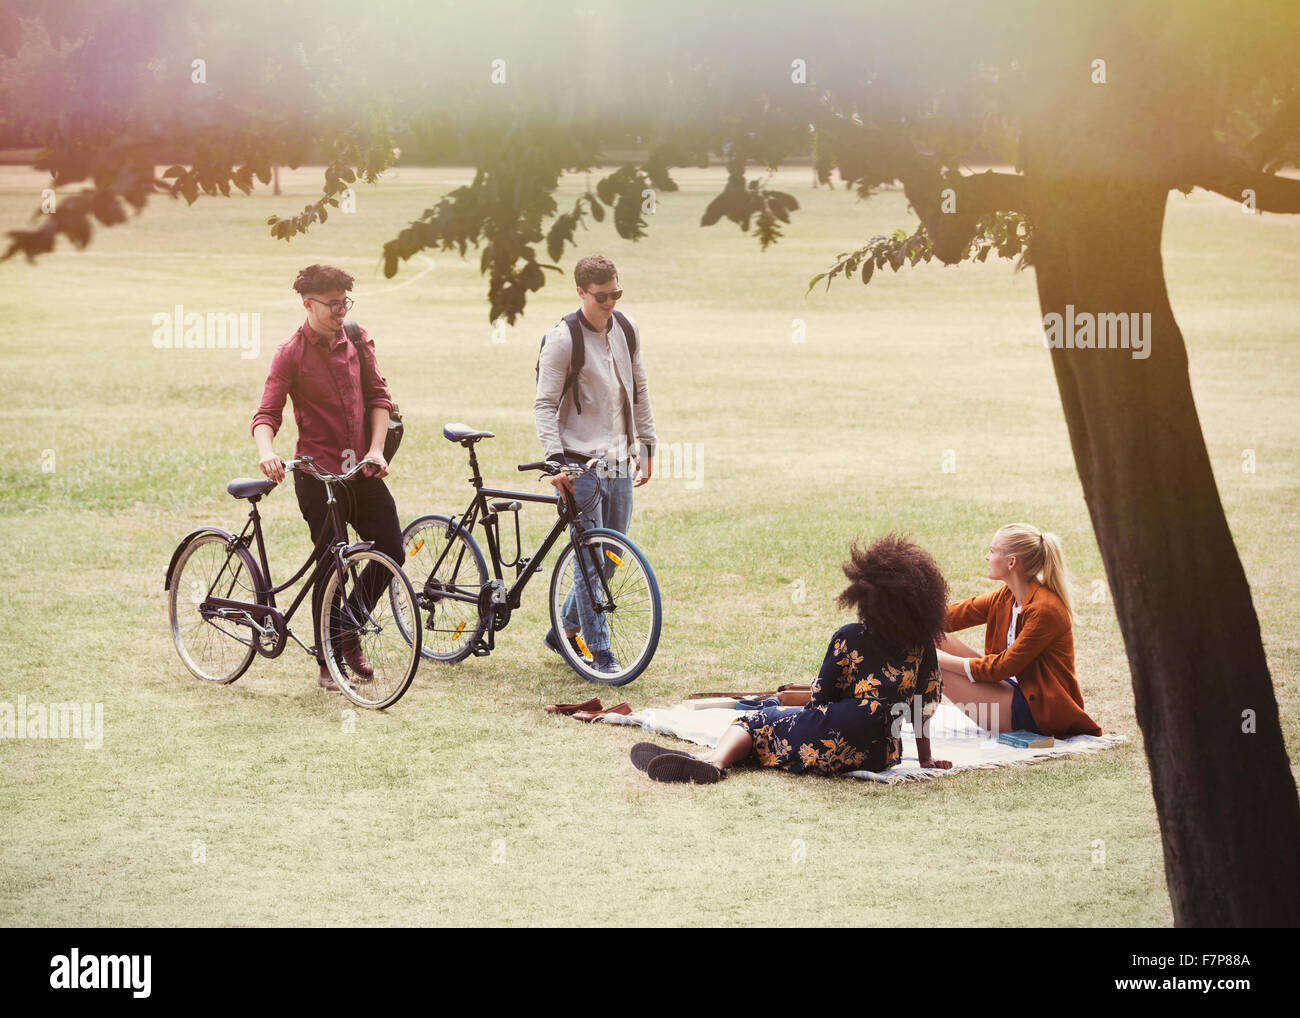 Men with bicycles approaching women on blanket in park - Stock Image